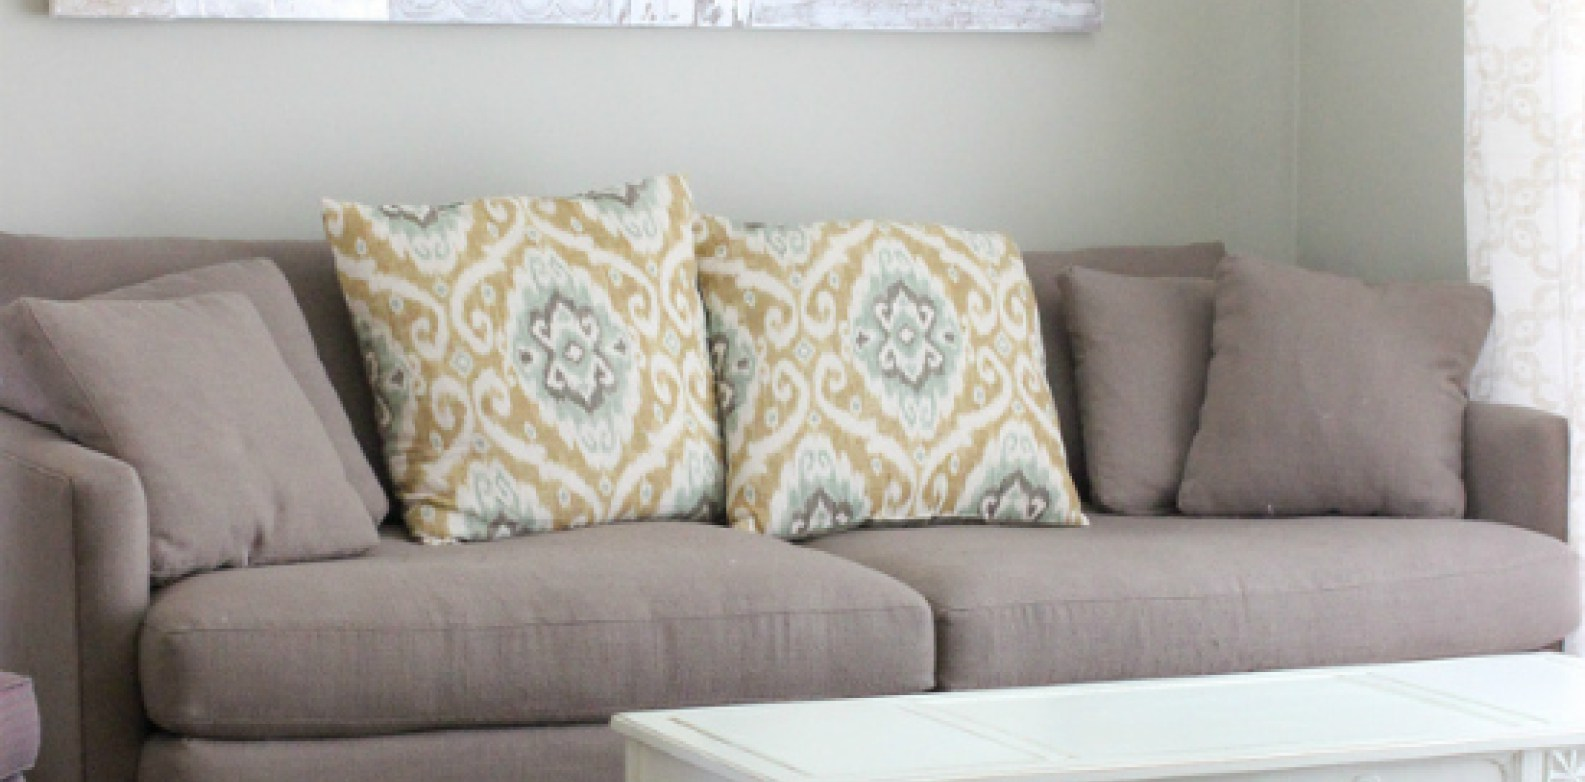 Crate Barrel Lounge | Crate and Barrel Furniture Covers | Crate and Barrel Couch